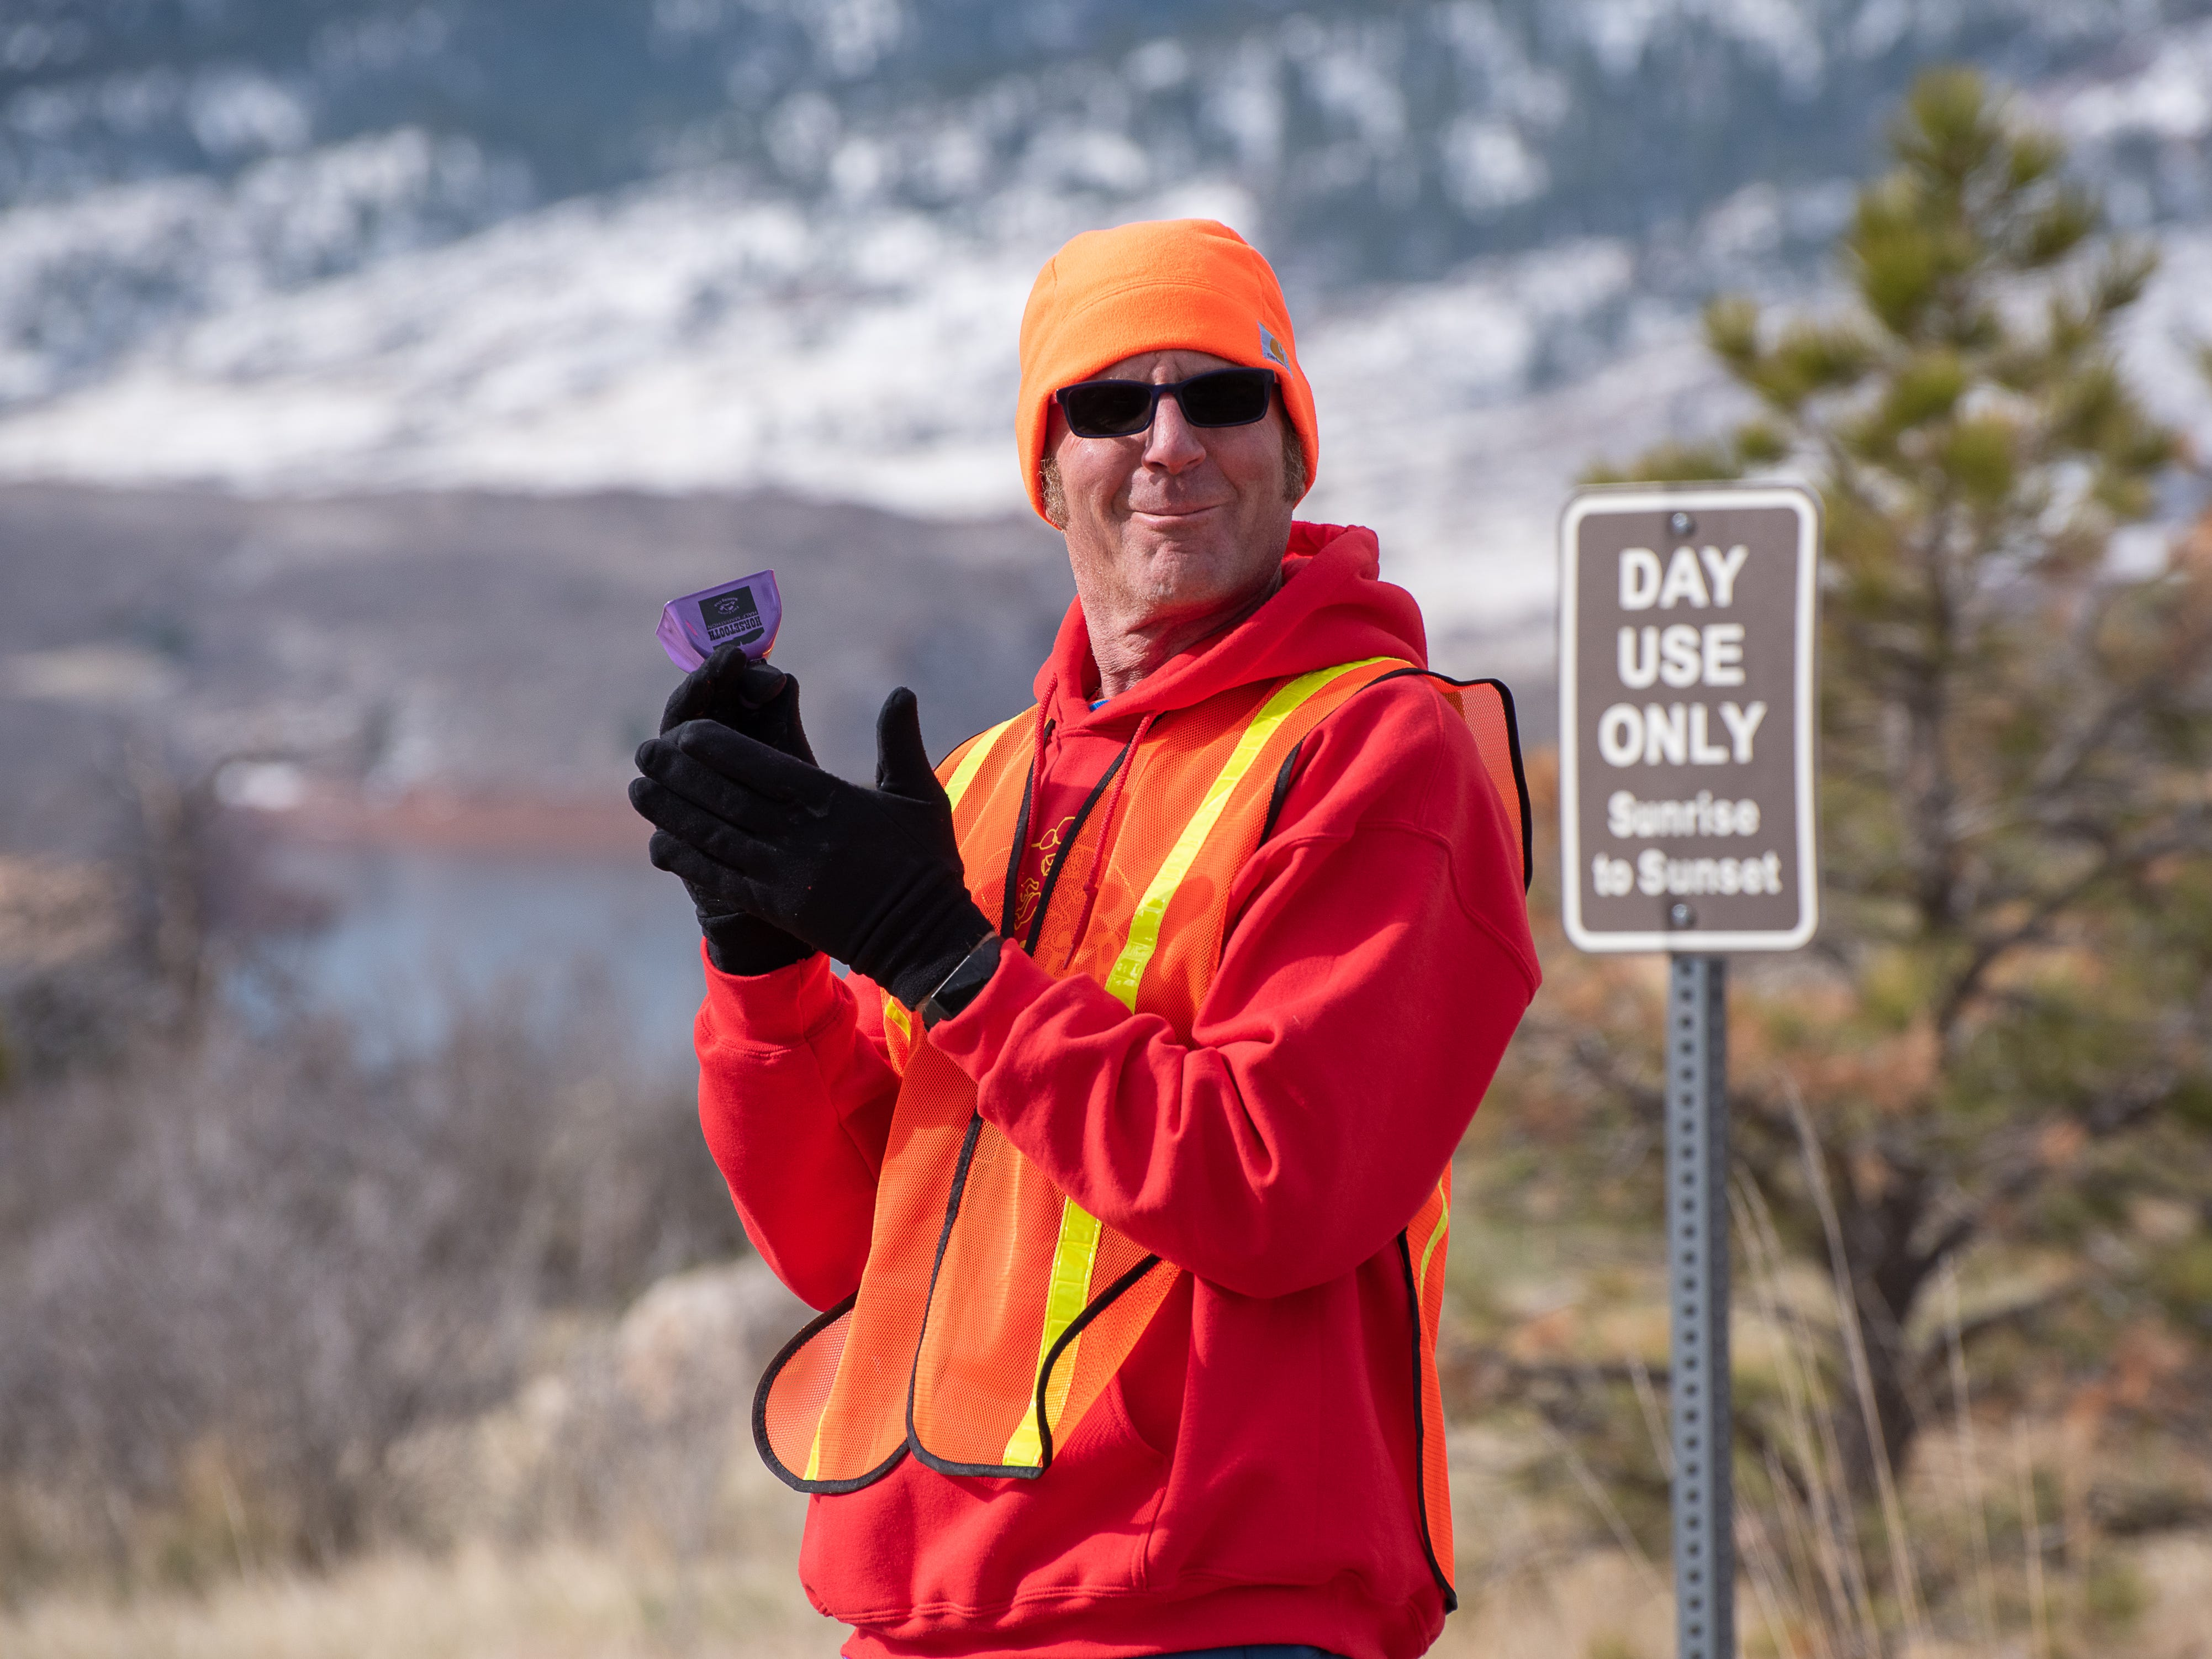 A race volunteer cheers on runners during the Horsetooth Half Marathon on Sunday, April 14 2019, in Fort Collins, Colo.